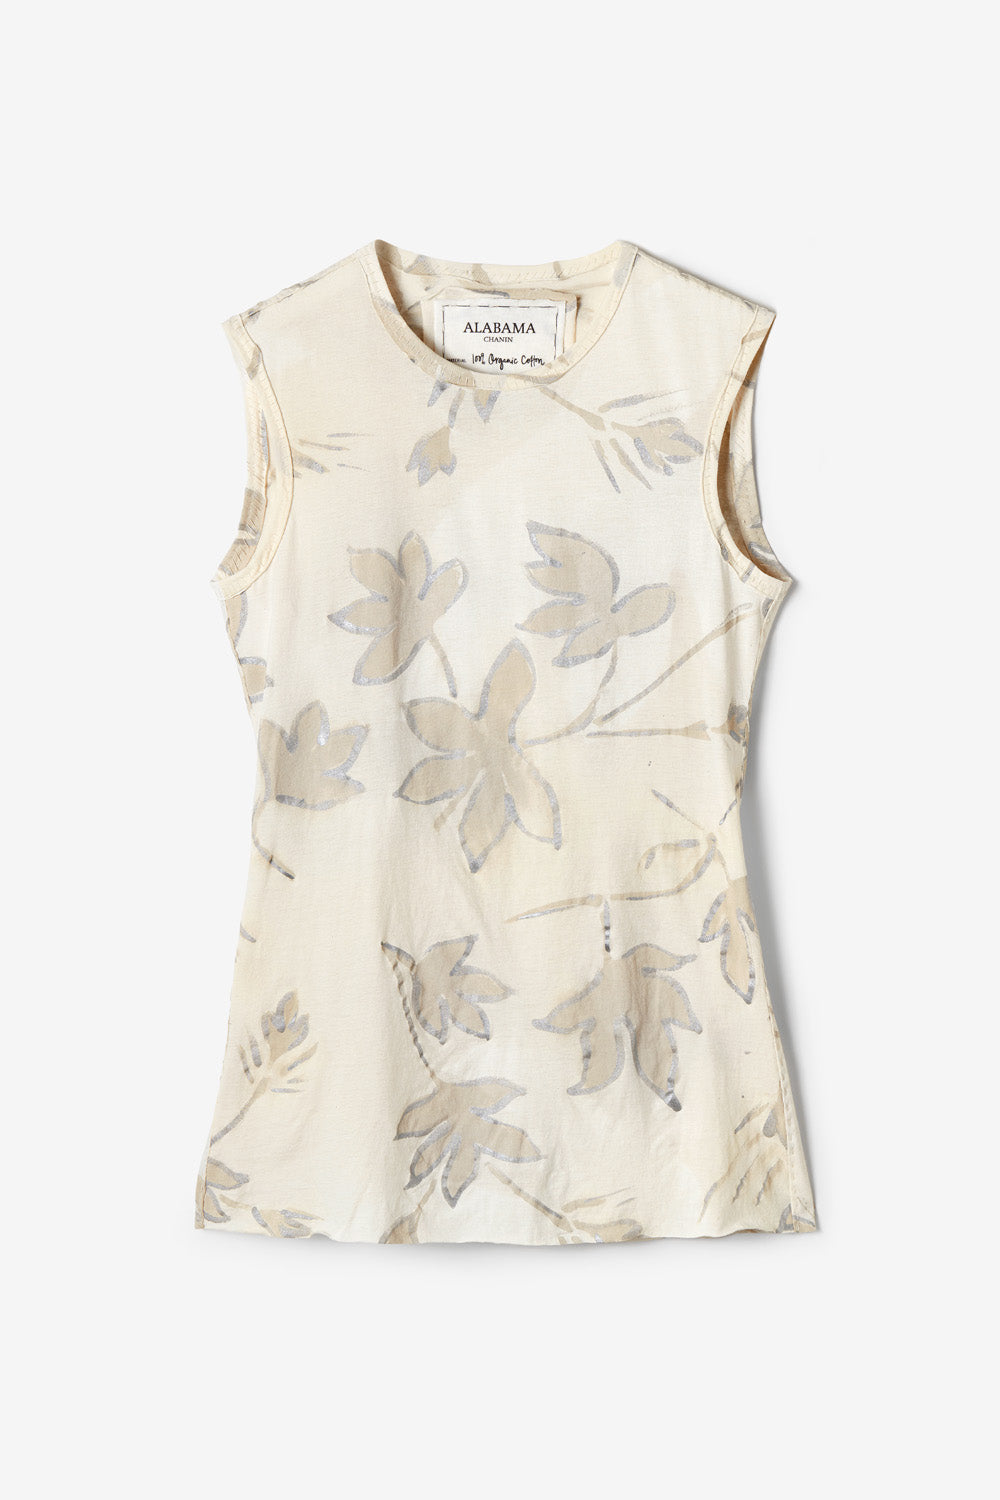 alabama chanin jude top handsewn fitted top with hand painted floral pattern in natural